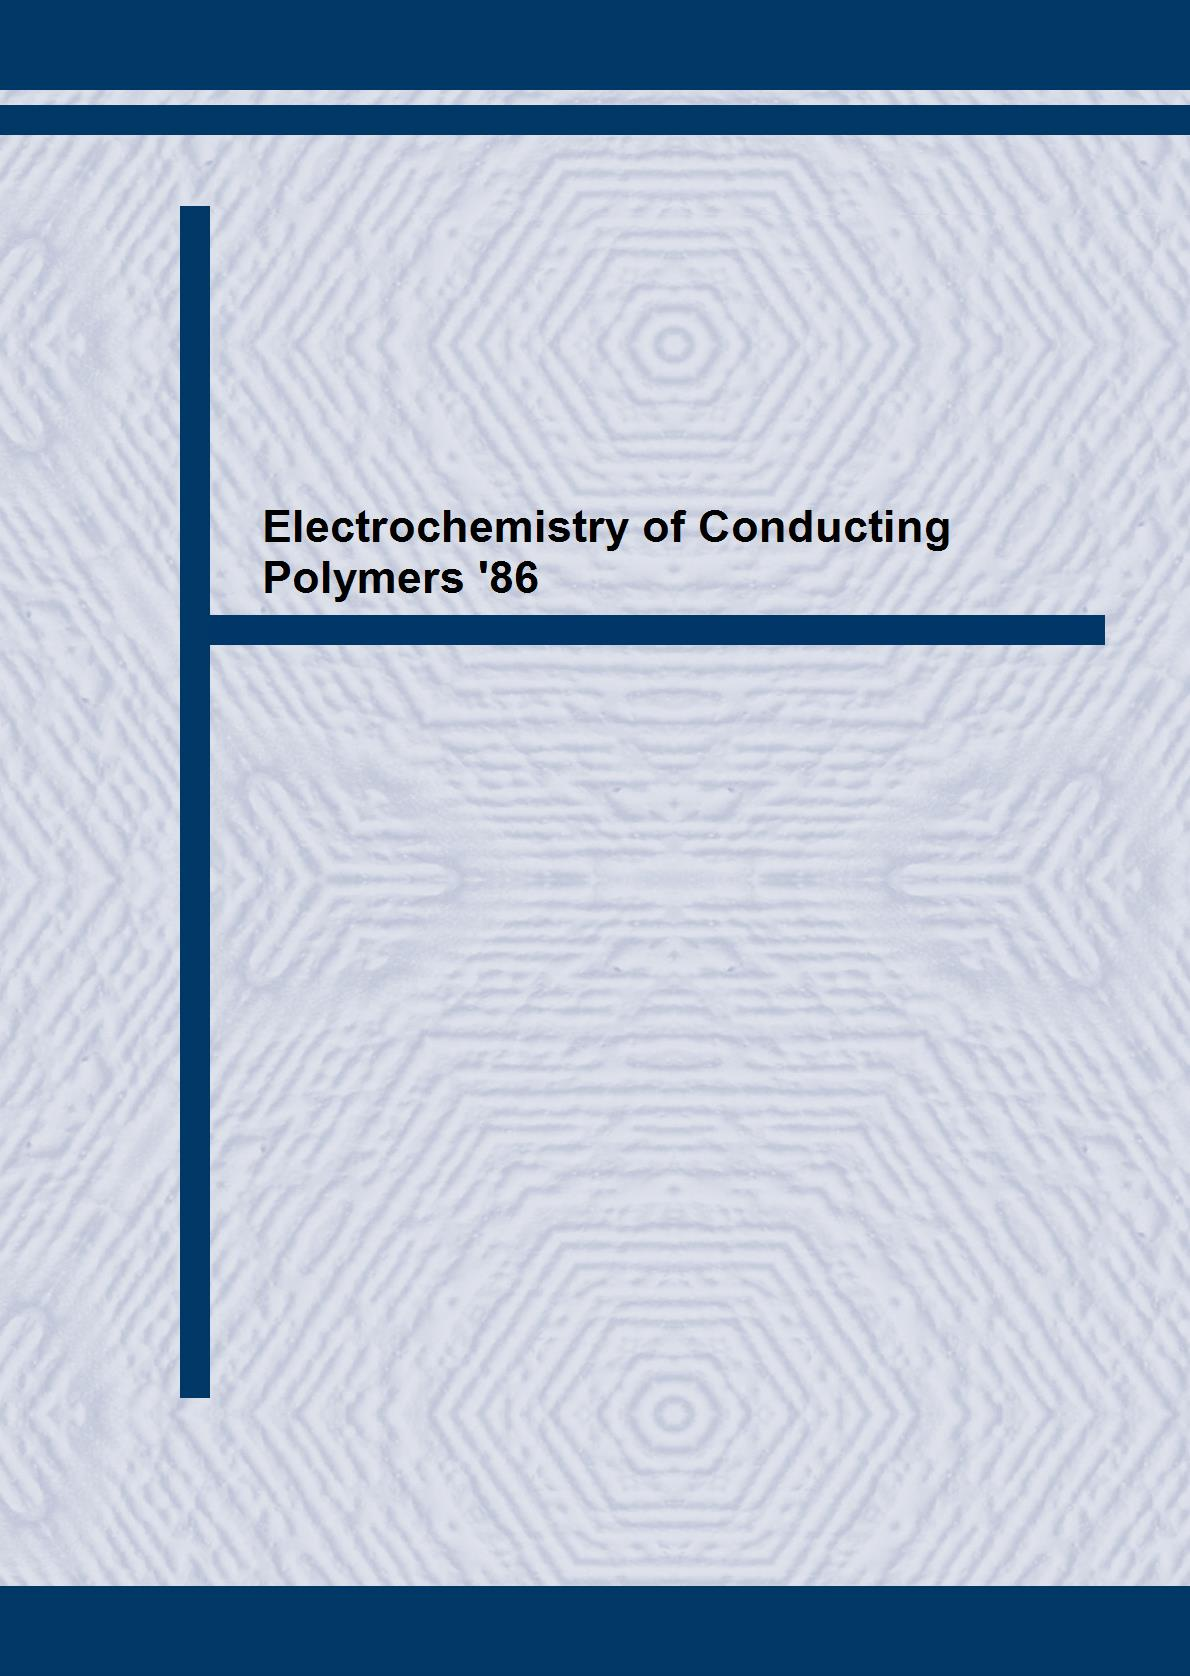 Electrochemistry of Conducting Polymers '86